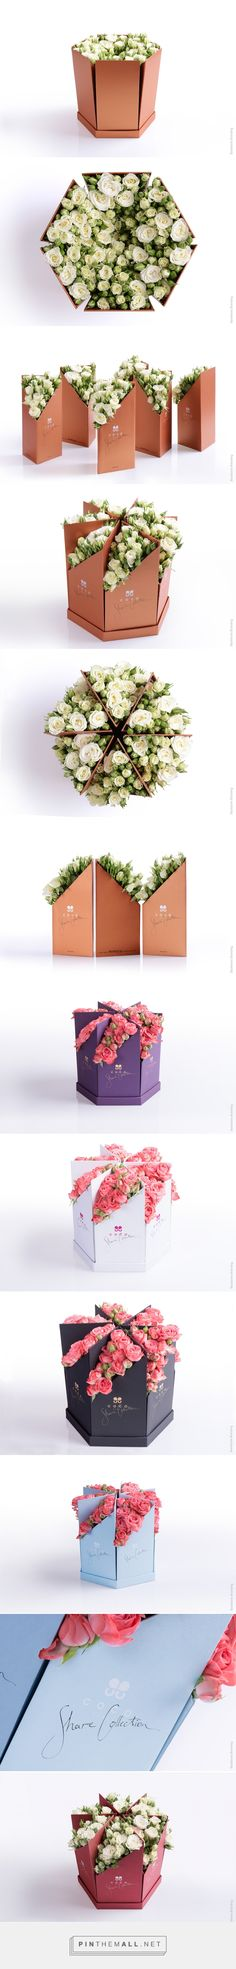 "Calligraphy, graphic design and packaging for Coco Fiori ""Share Collection"" on Behance by Backbone Branding Yervan, Armenia curated by Packaging Diva PD. A big bouquet of flowers which you can share into parts and present a piece of beauty to the people y Flower Packaging, Cool Packaging, Design Packaging, Packaging Ideas, Big Bouquet Of Flowers, Bouquet Box, Fleur Design, Branding, Packaging Design Inspiration"